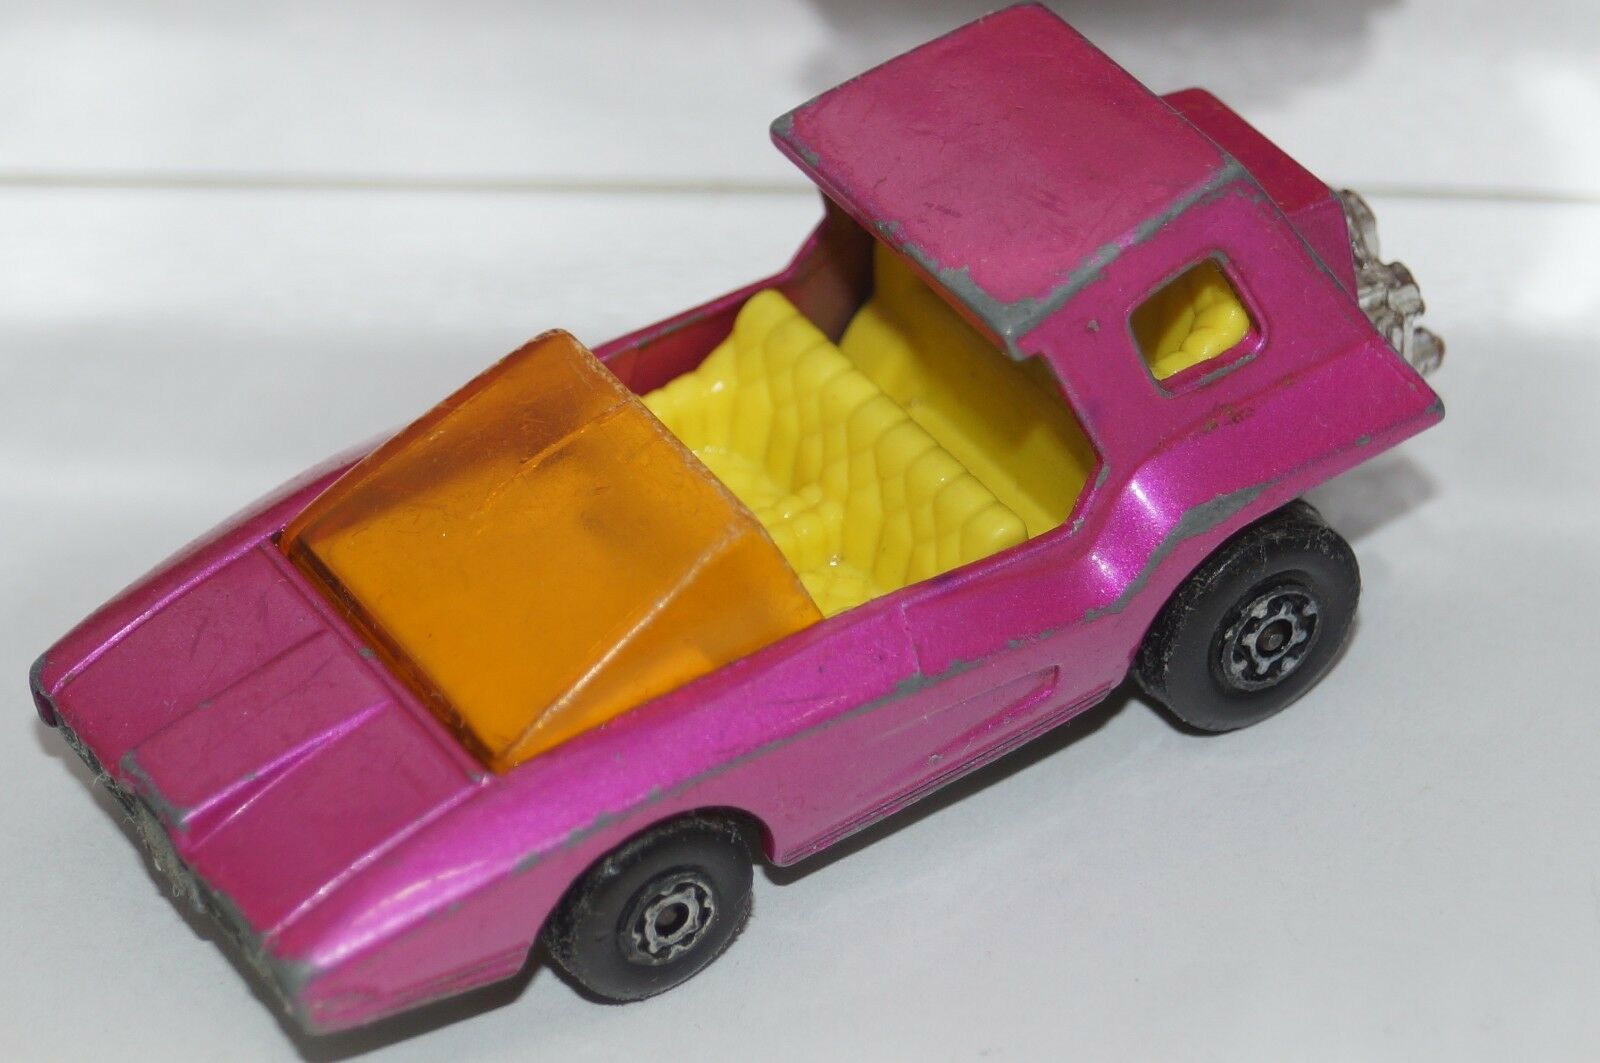 ORIGINAL Matchbox Superfast Soopa Coopa No 37 - Pink color - SPECIAL NO FLOWER